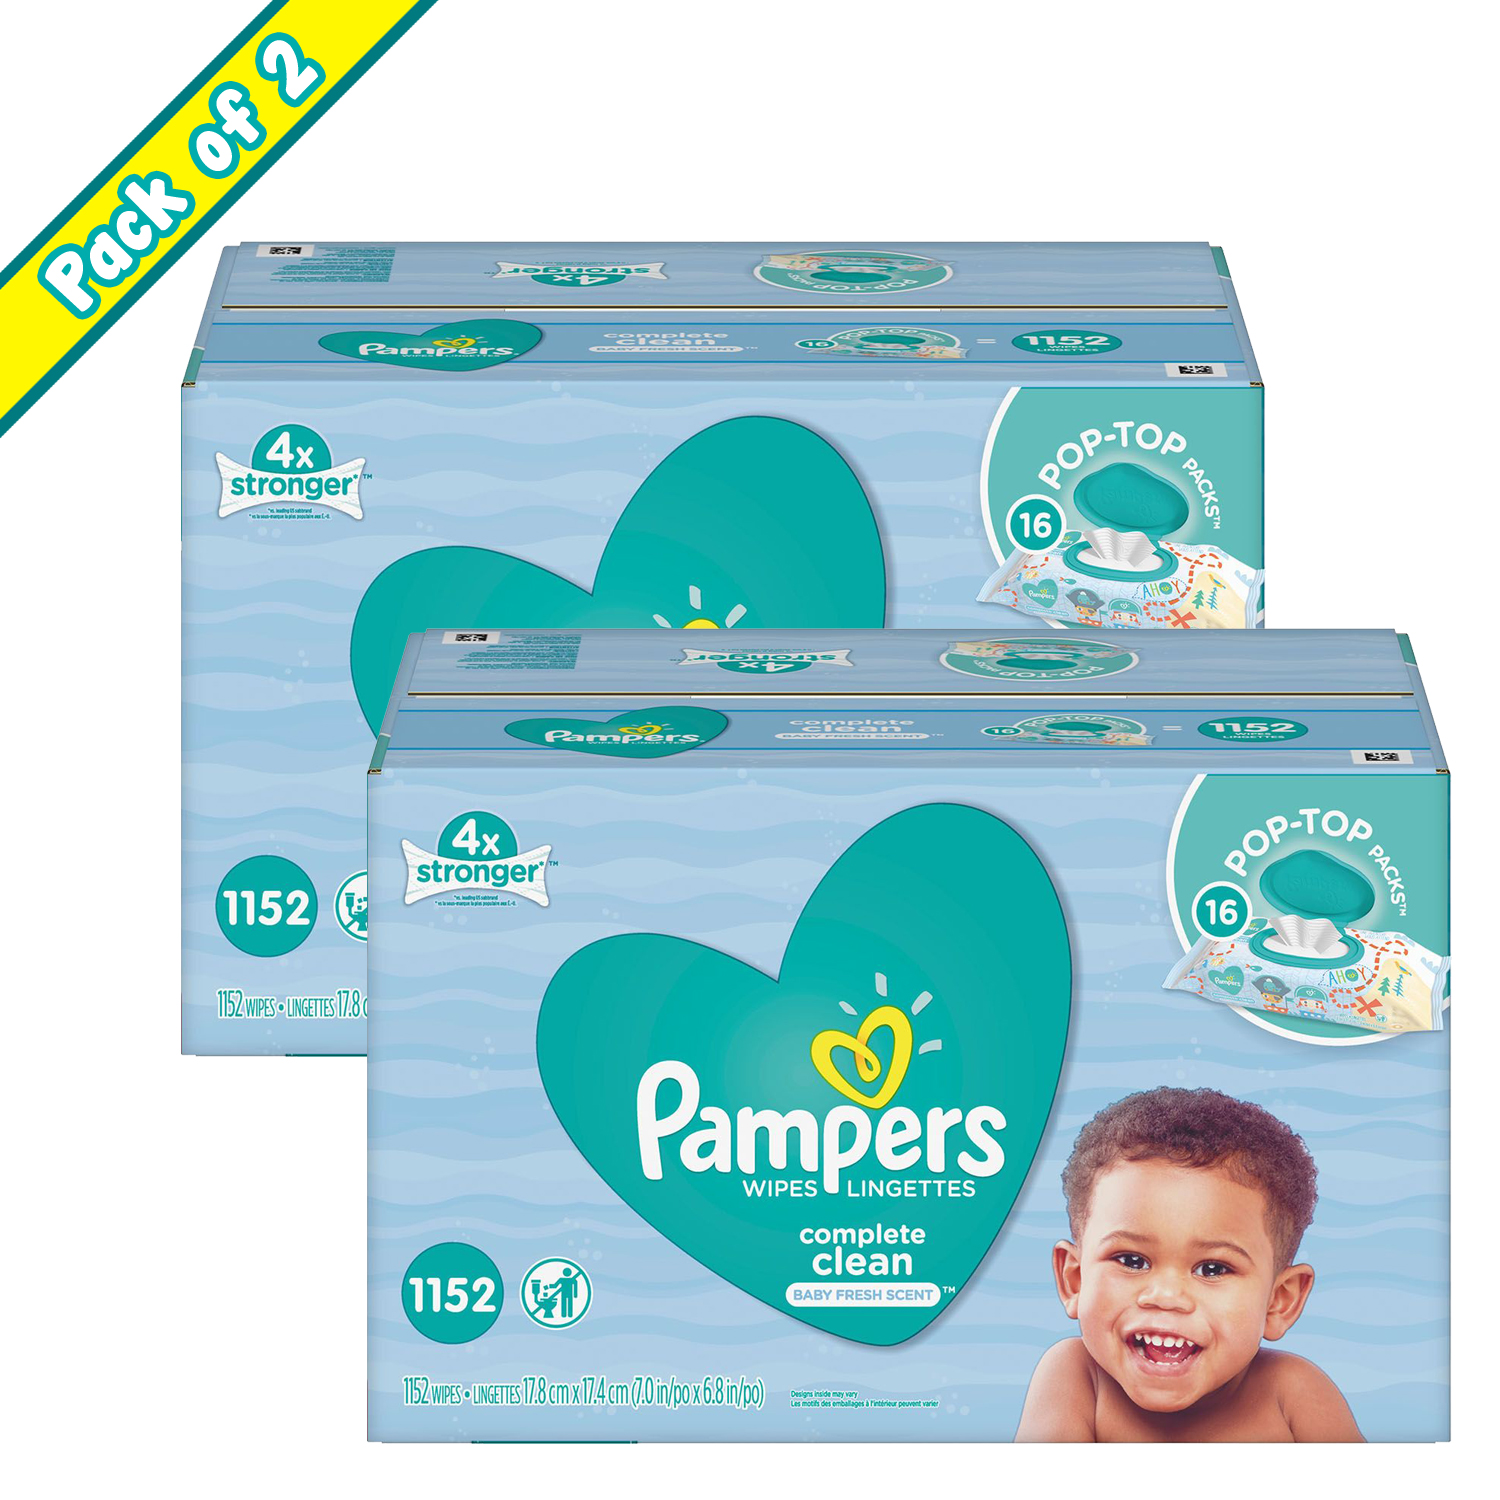 Pampers Baby Wipes, Complete Clean (1152 ct.) (PACK OF 2) by Unbranded